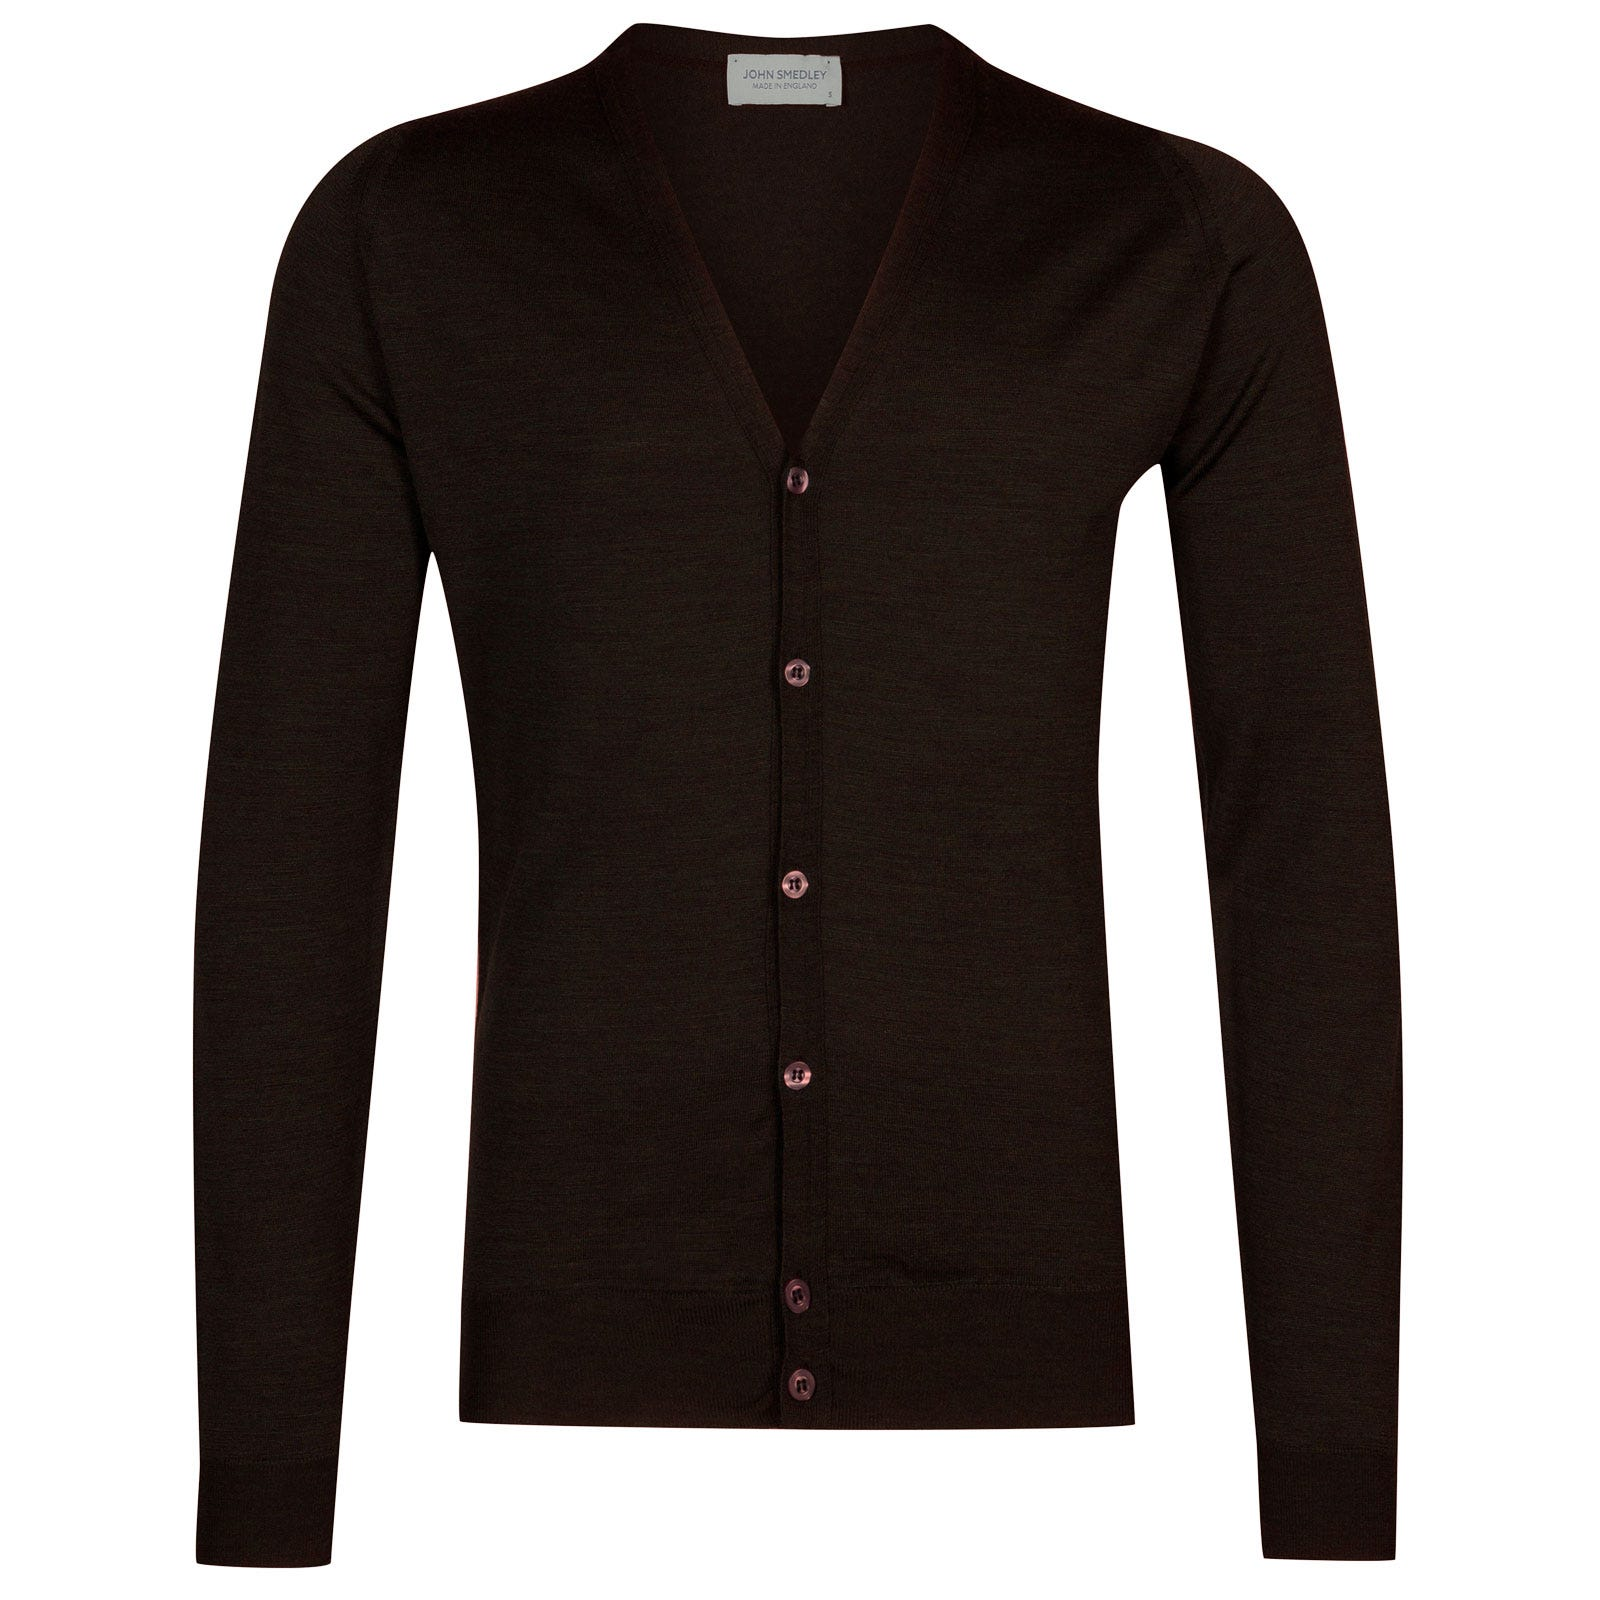 John Smedley petworth Merino Wool Cardigan in Chestnut-L